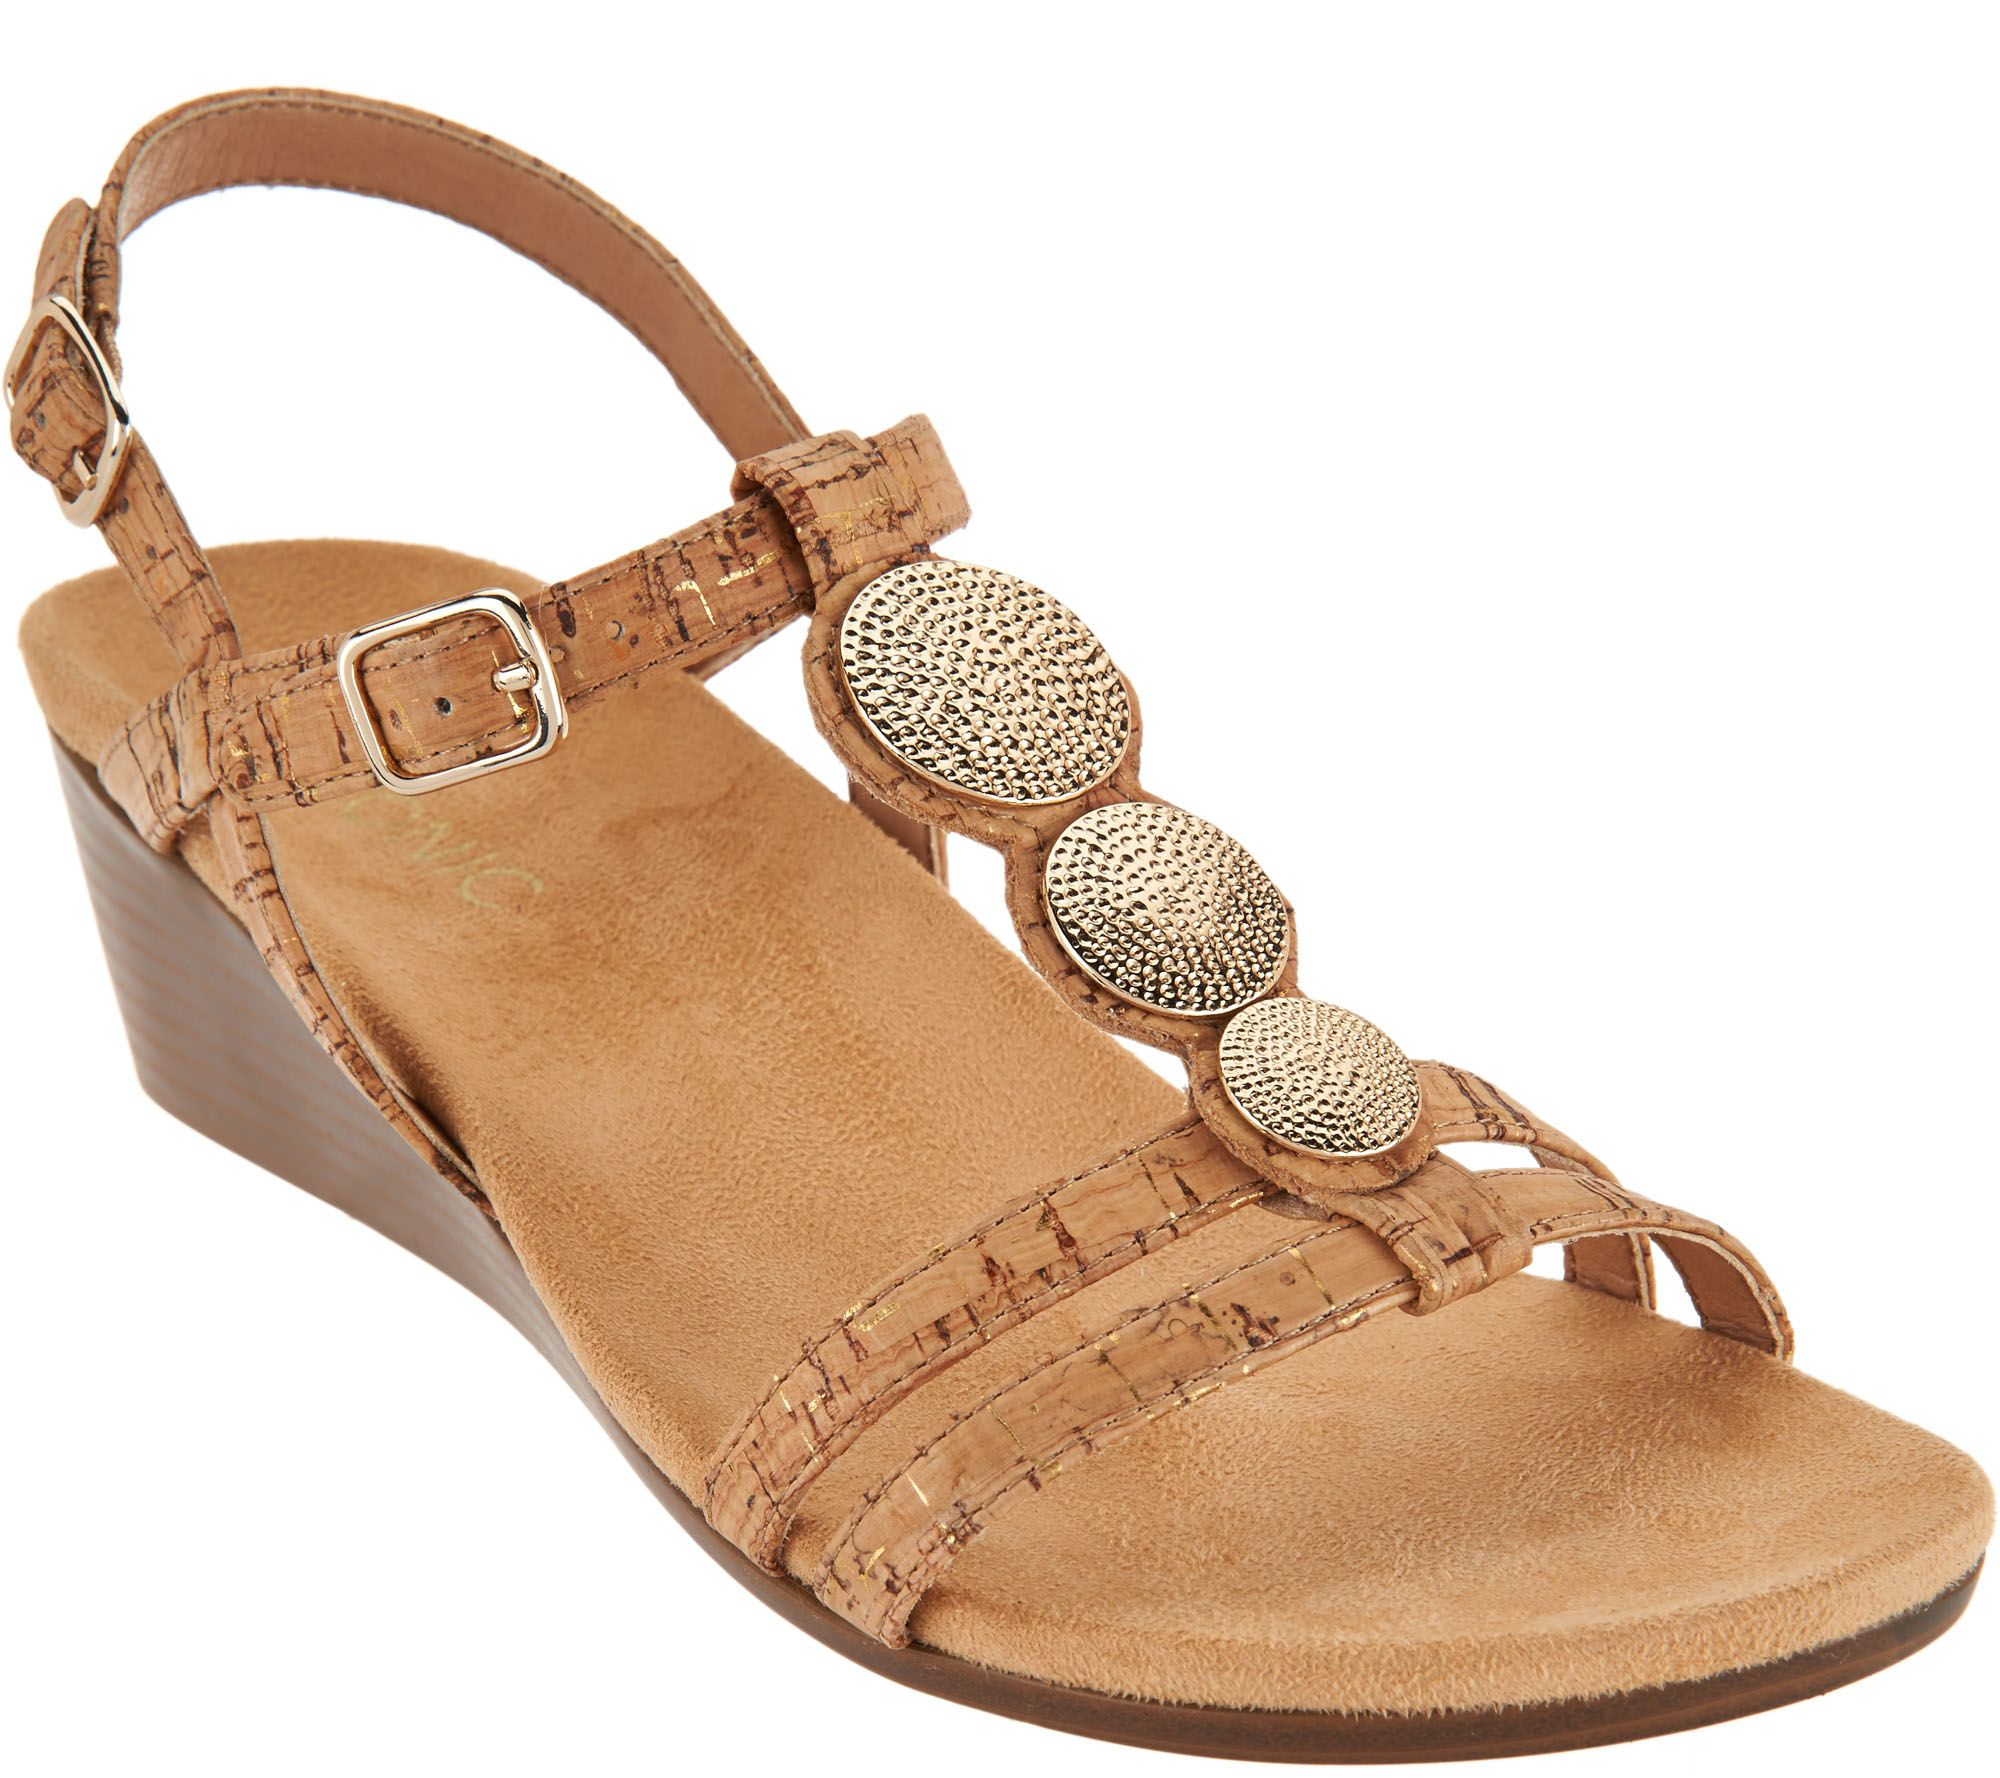 6eac20984a9d Vionic Orthotic Embellished Wedge Sandals - Noleen - Page 1 — QVC.com